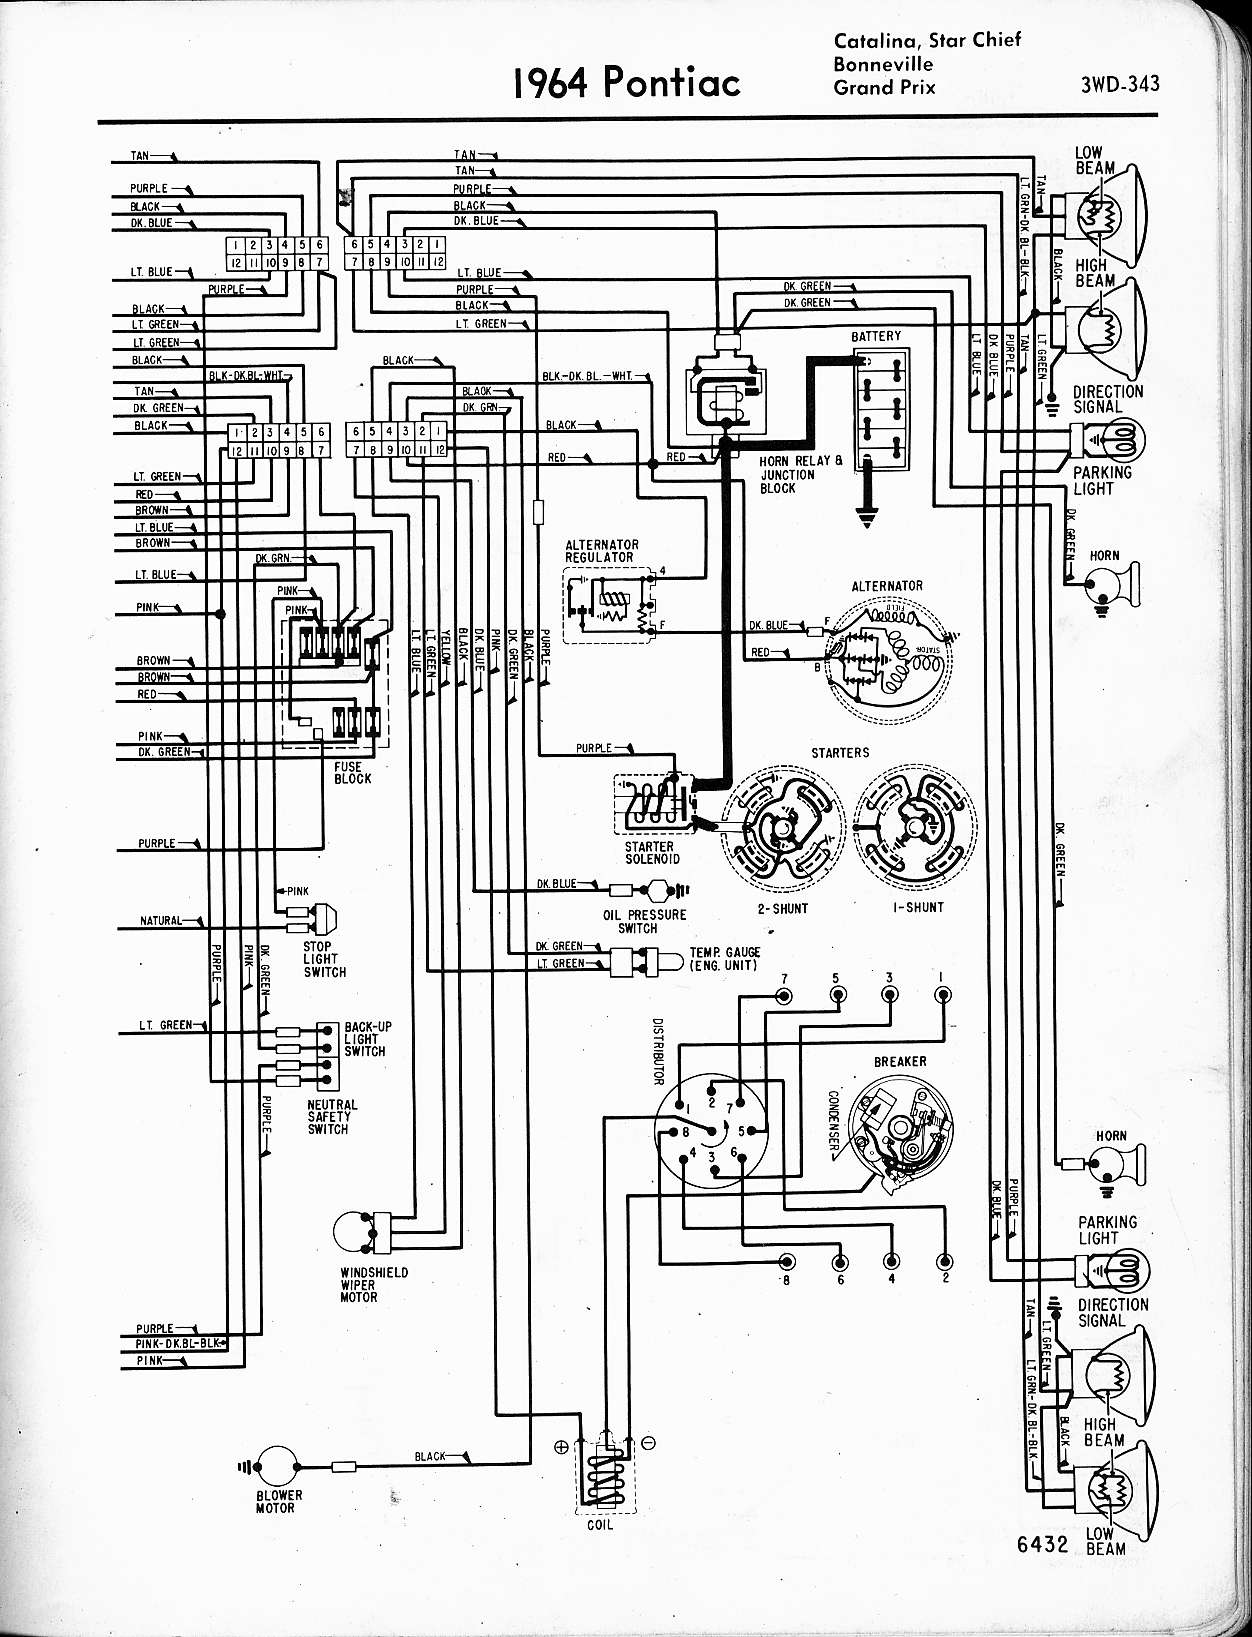 MWire5765 343 wallace racing wiring diagrams wiring diagram for 68 cougar starter at reclaimingppi.co